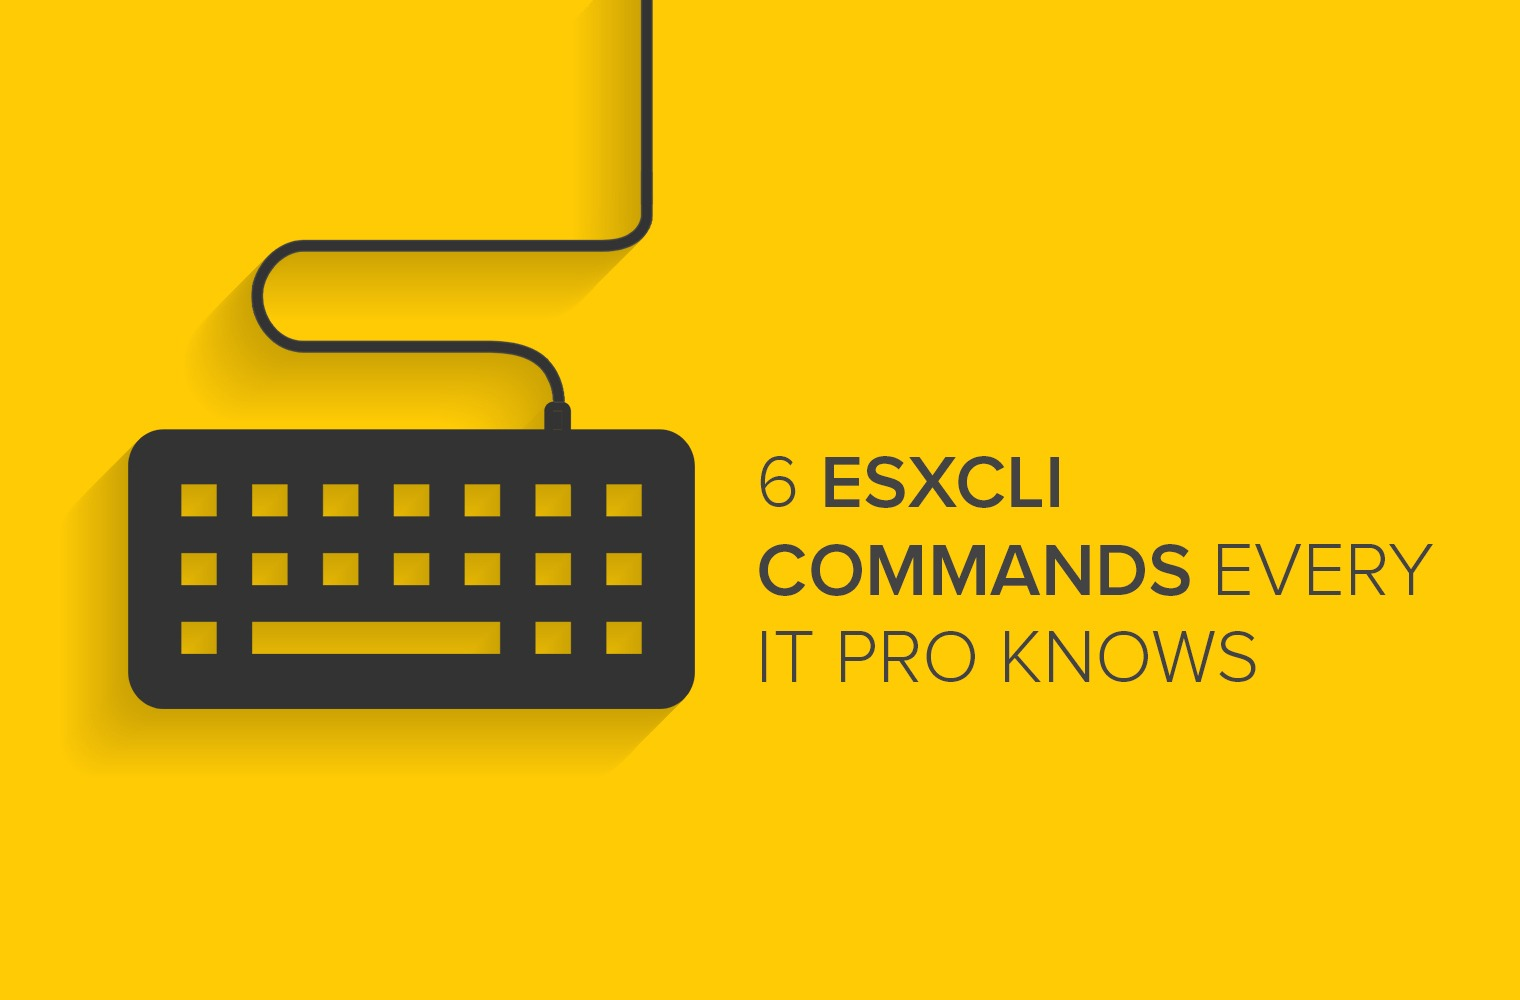 6 Esxcli Commands Every IT Pro Knows